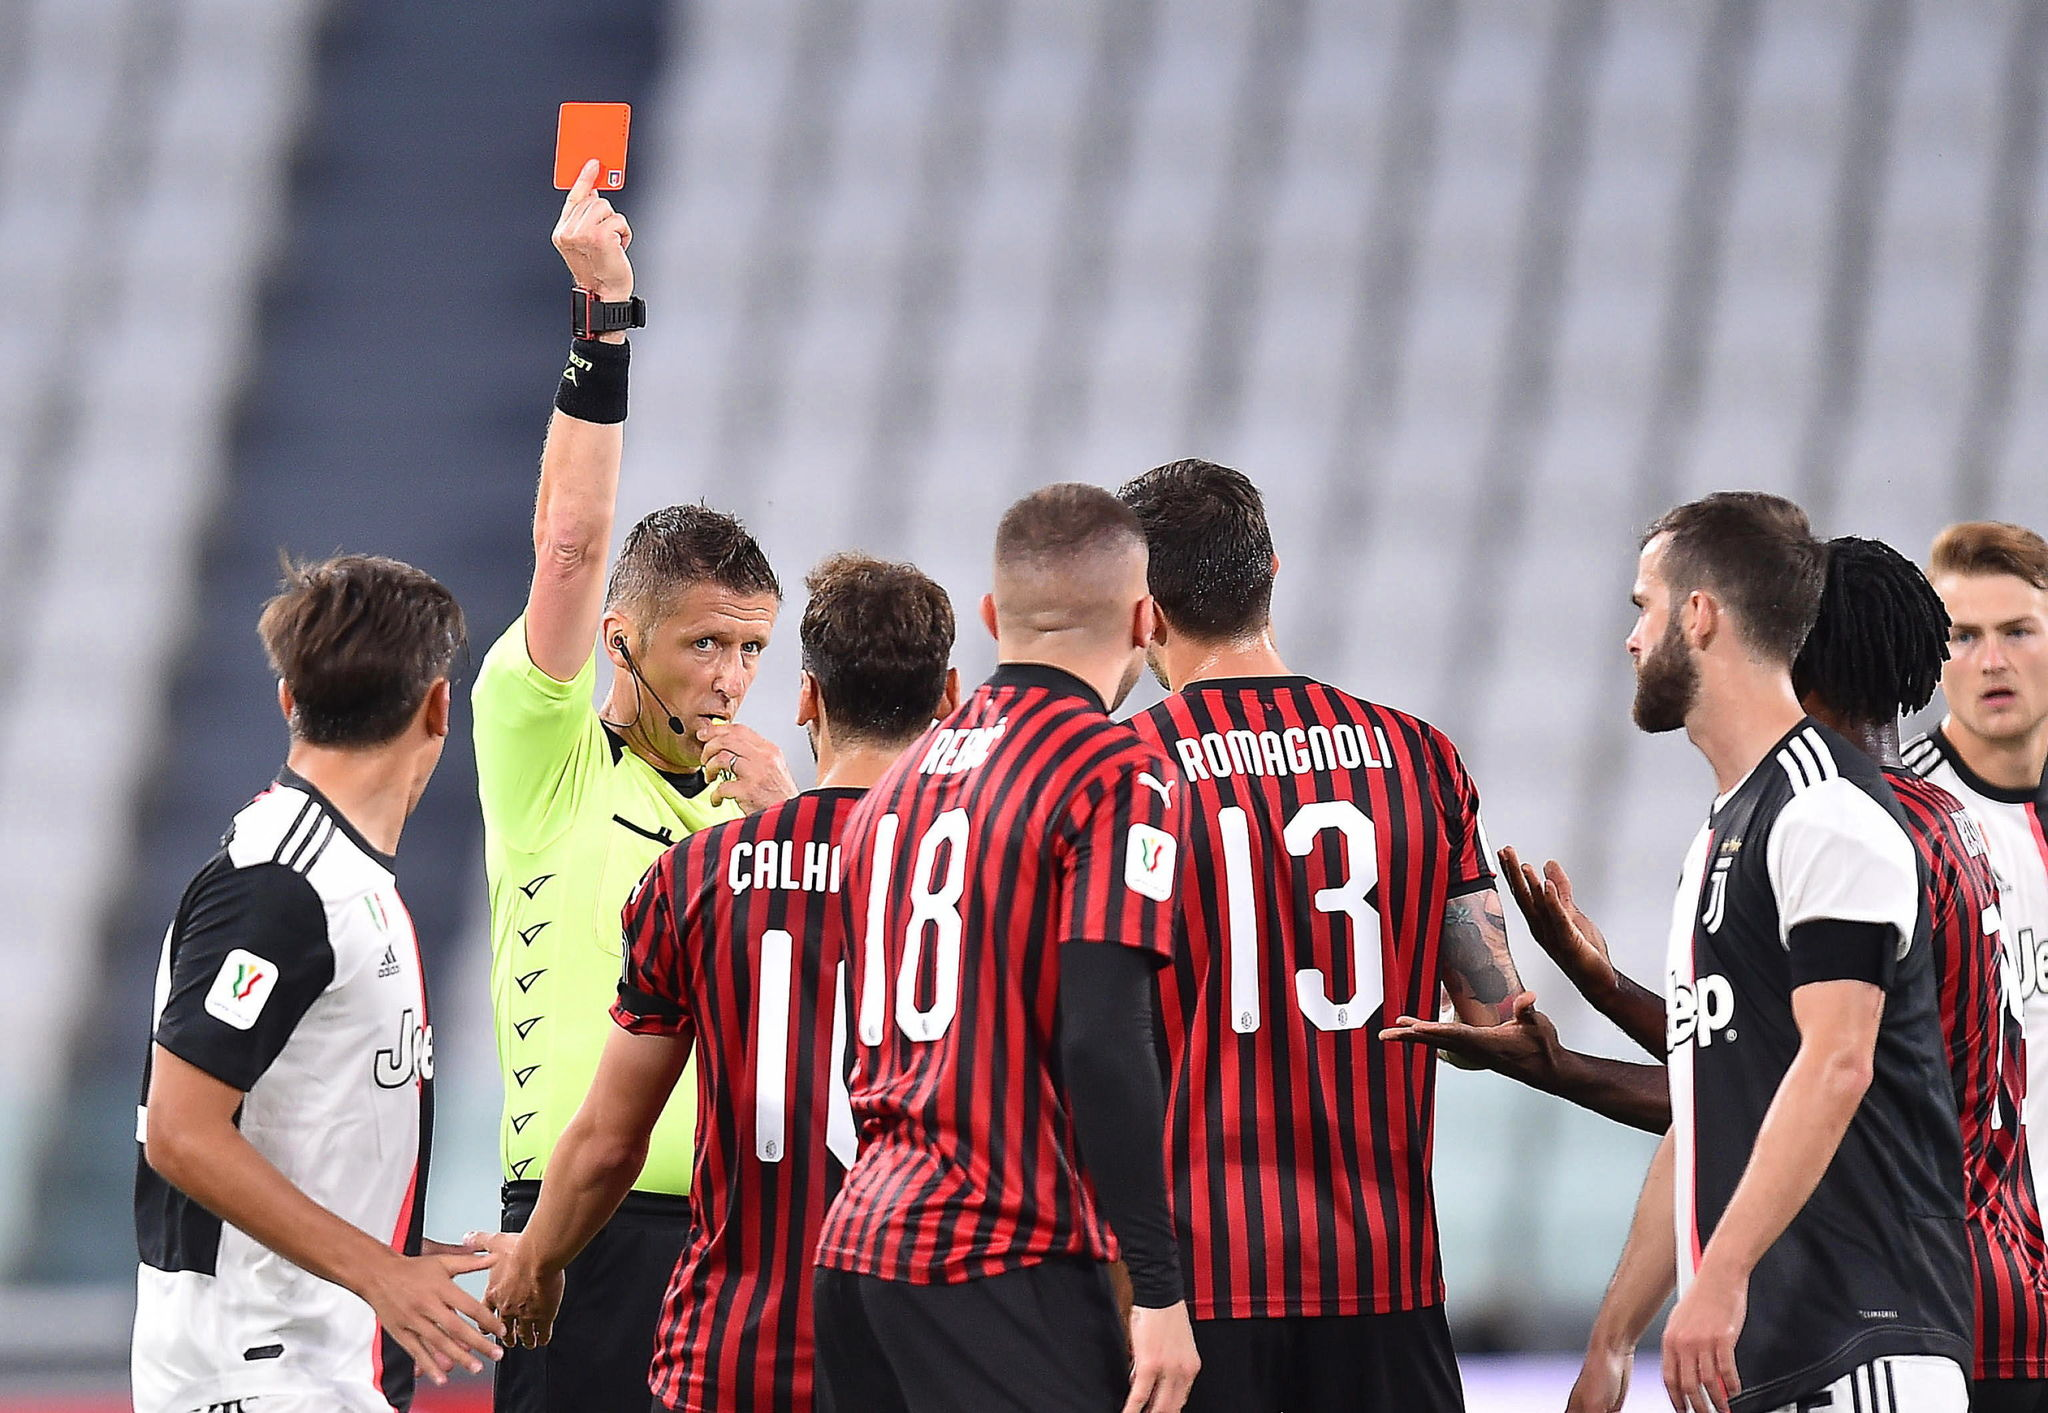 Turin (Italy), 12/06/2020.- Milans Ante lt;HIT gt;Rebic lt;/HIT gt; (front C) is sent off during the Coppa Italia semi final, second leg soccer match between Juventus FC and AC Milan in Turin, Italy, 12 June 2020. (Italia) EFE/EPA/ALESSANDRO DI MARCO